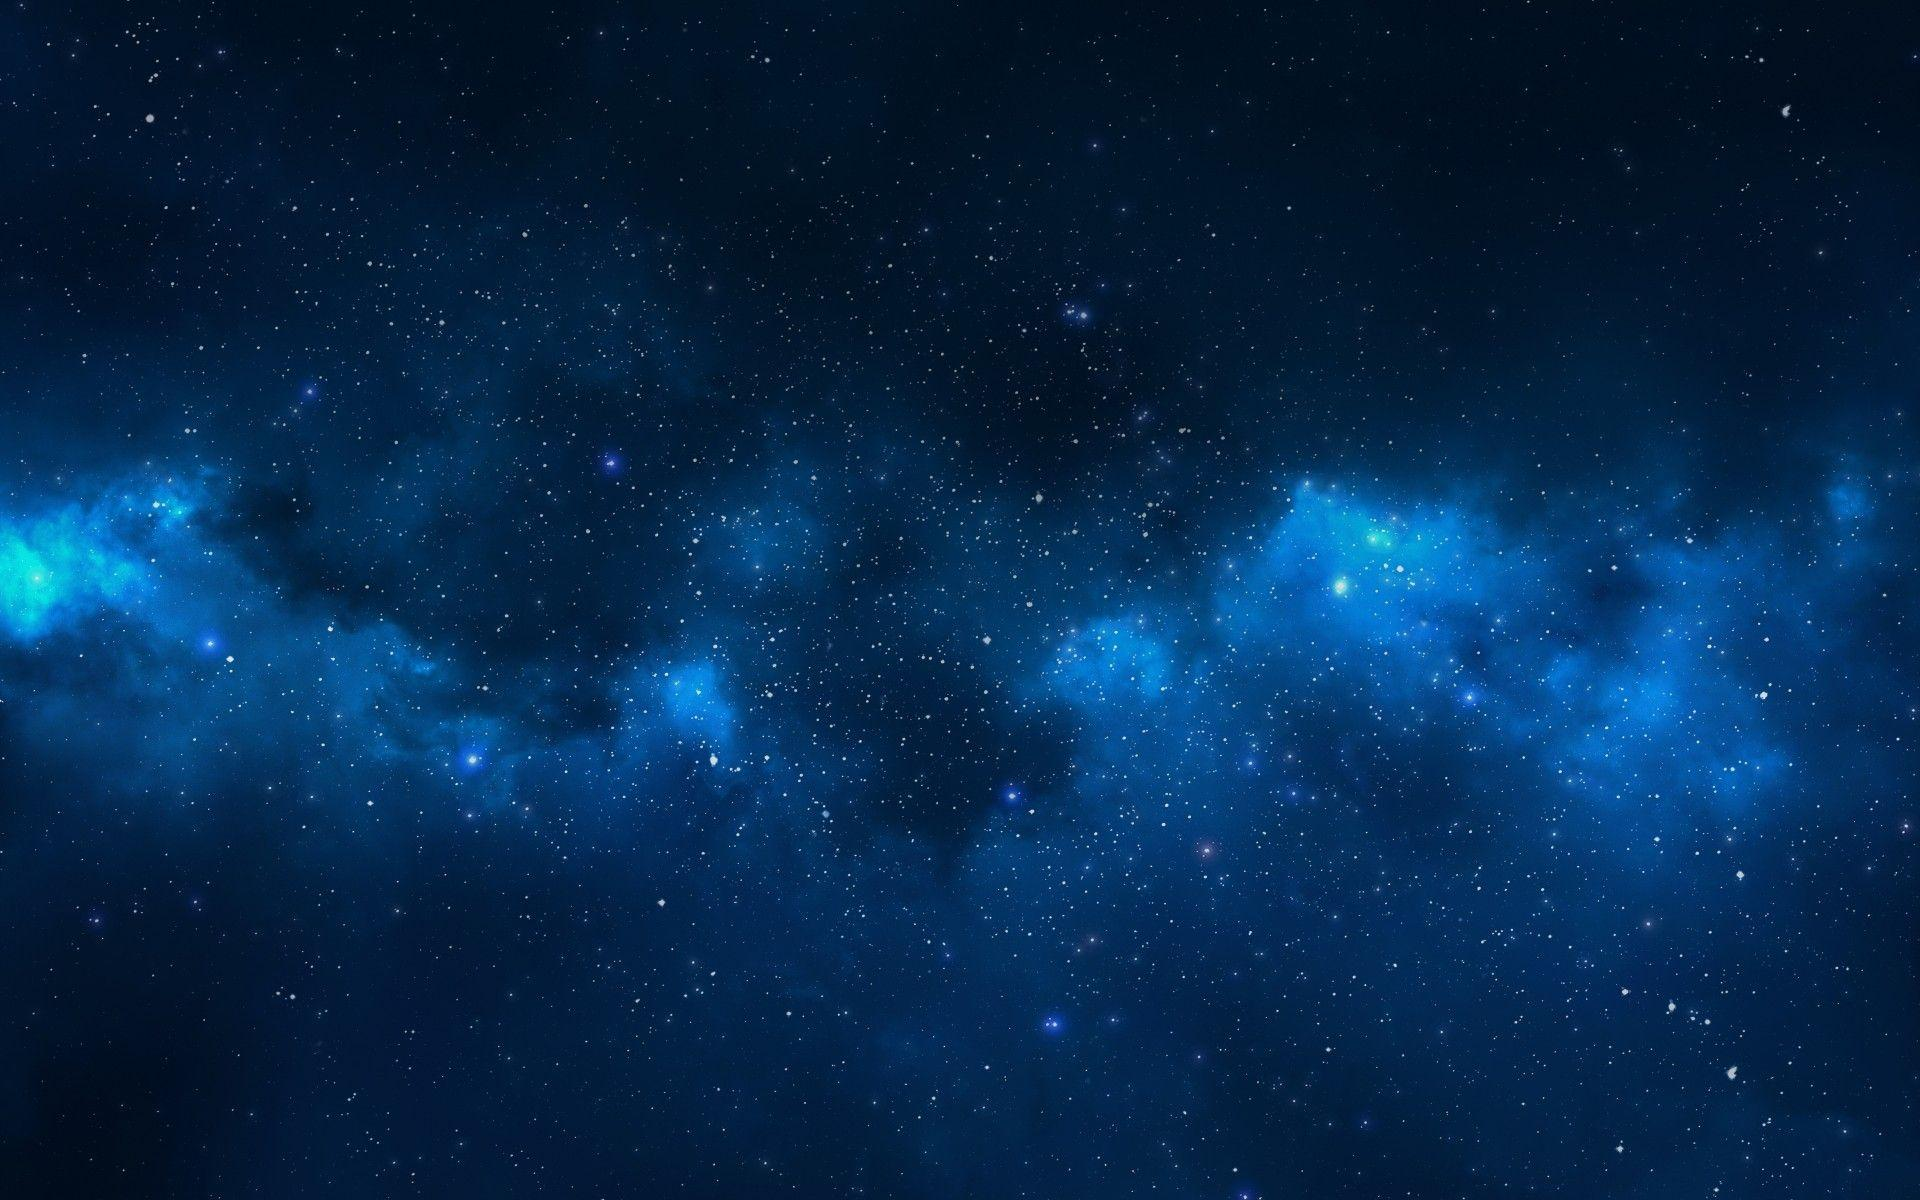 Wallpapers For > Night Sky Backgrounds Tumblr